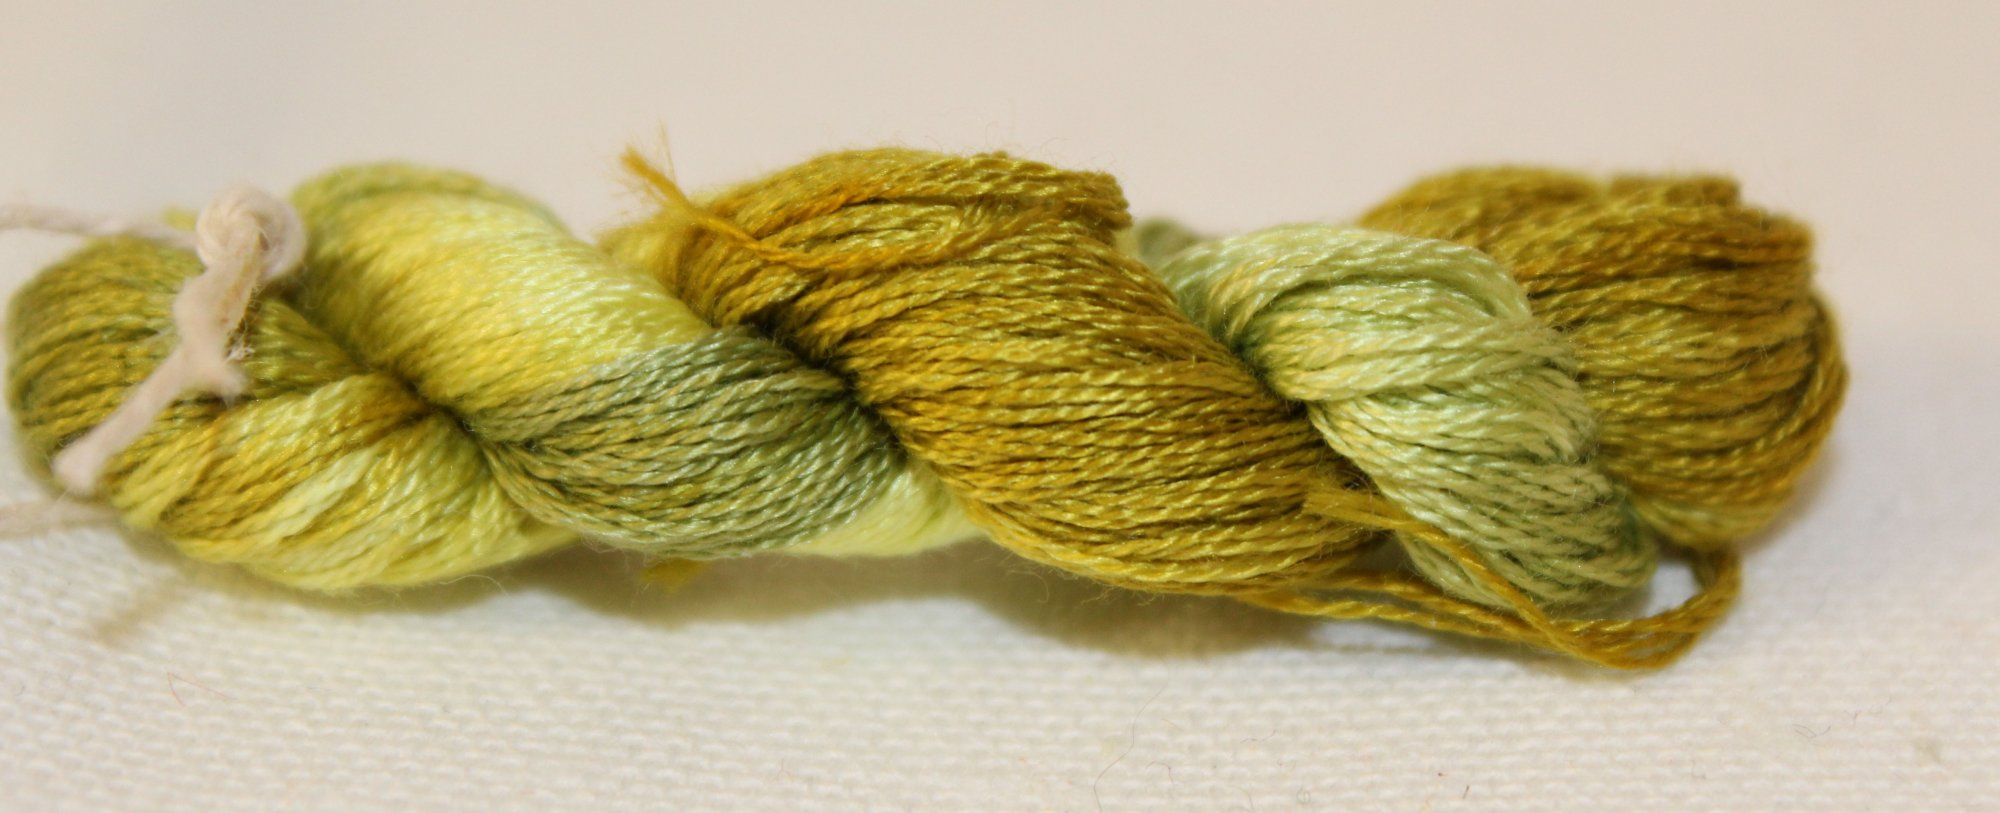 Limeade- Hand-Dyed Embroidery Floss